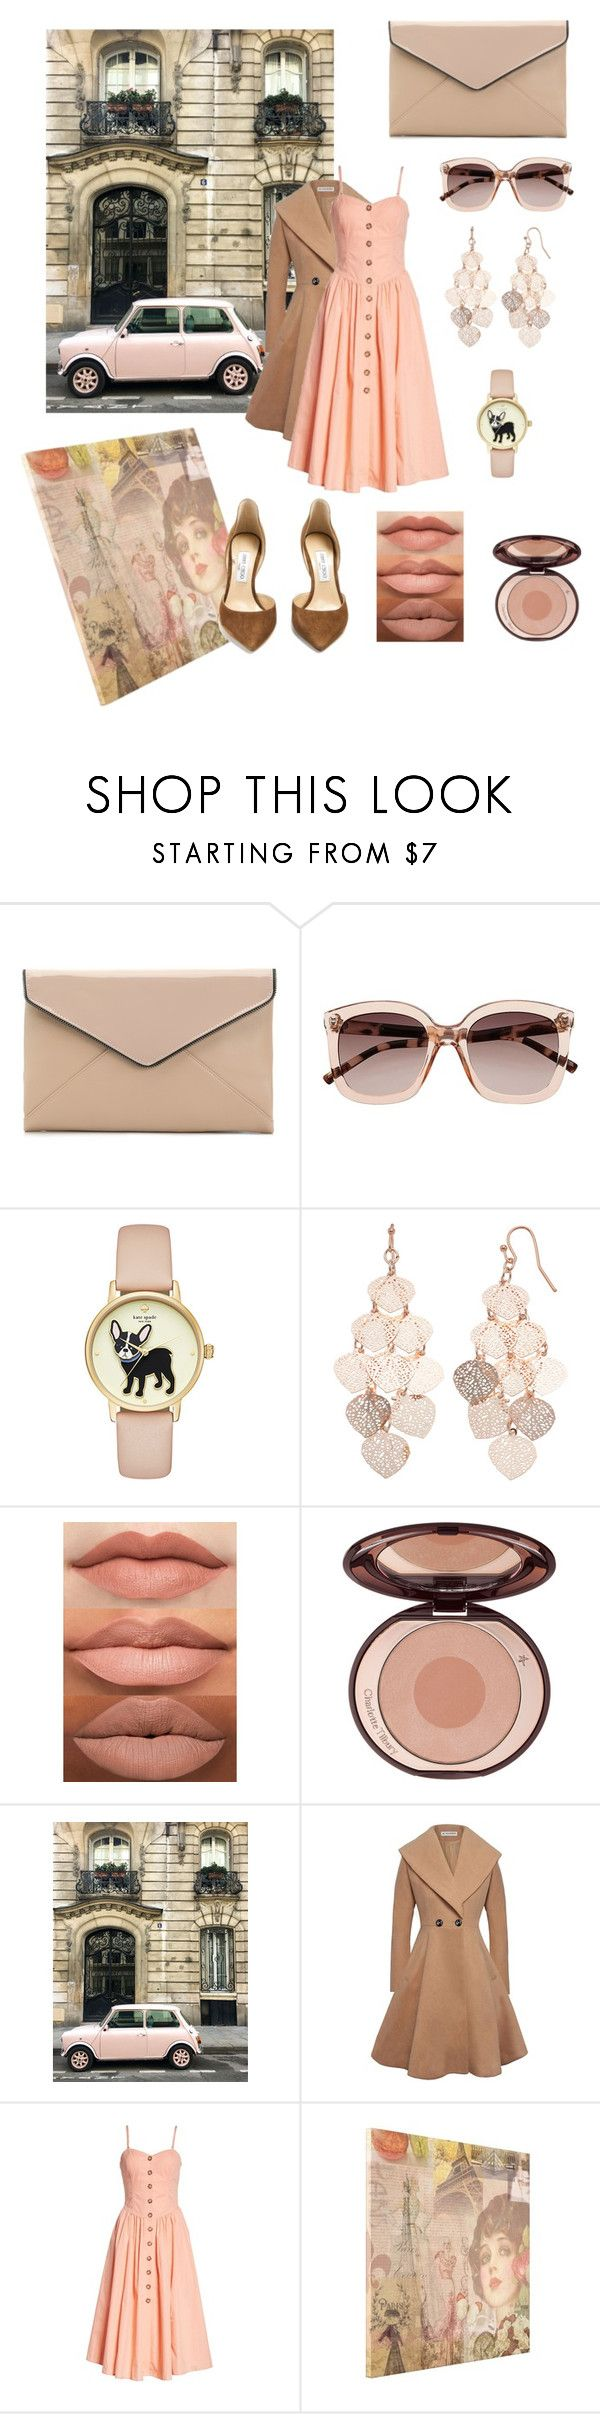 """Nude and Pink in Paris"" by modestmissy ❤ liked on Polyvore featuring La Diva, Witchery, LC Lauren Conrad, Free People, Jimmy Choo, parisfashionweek and Packandgo"